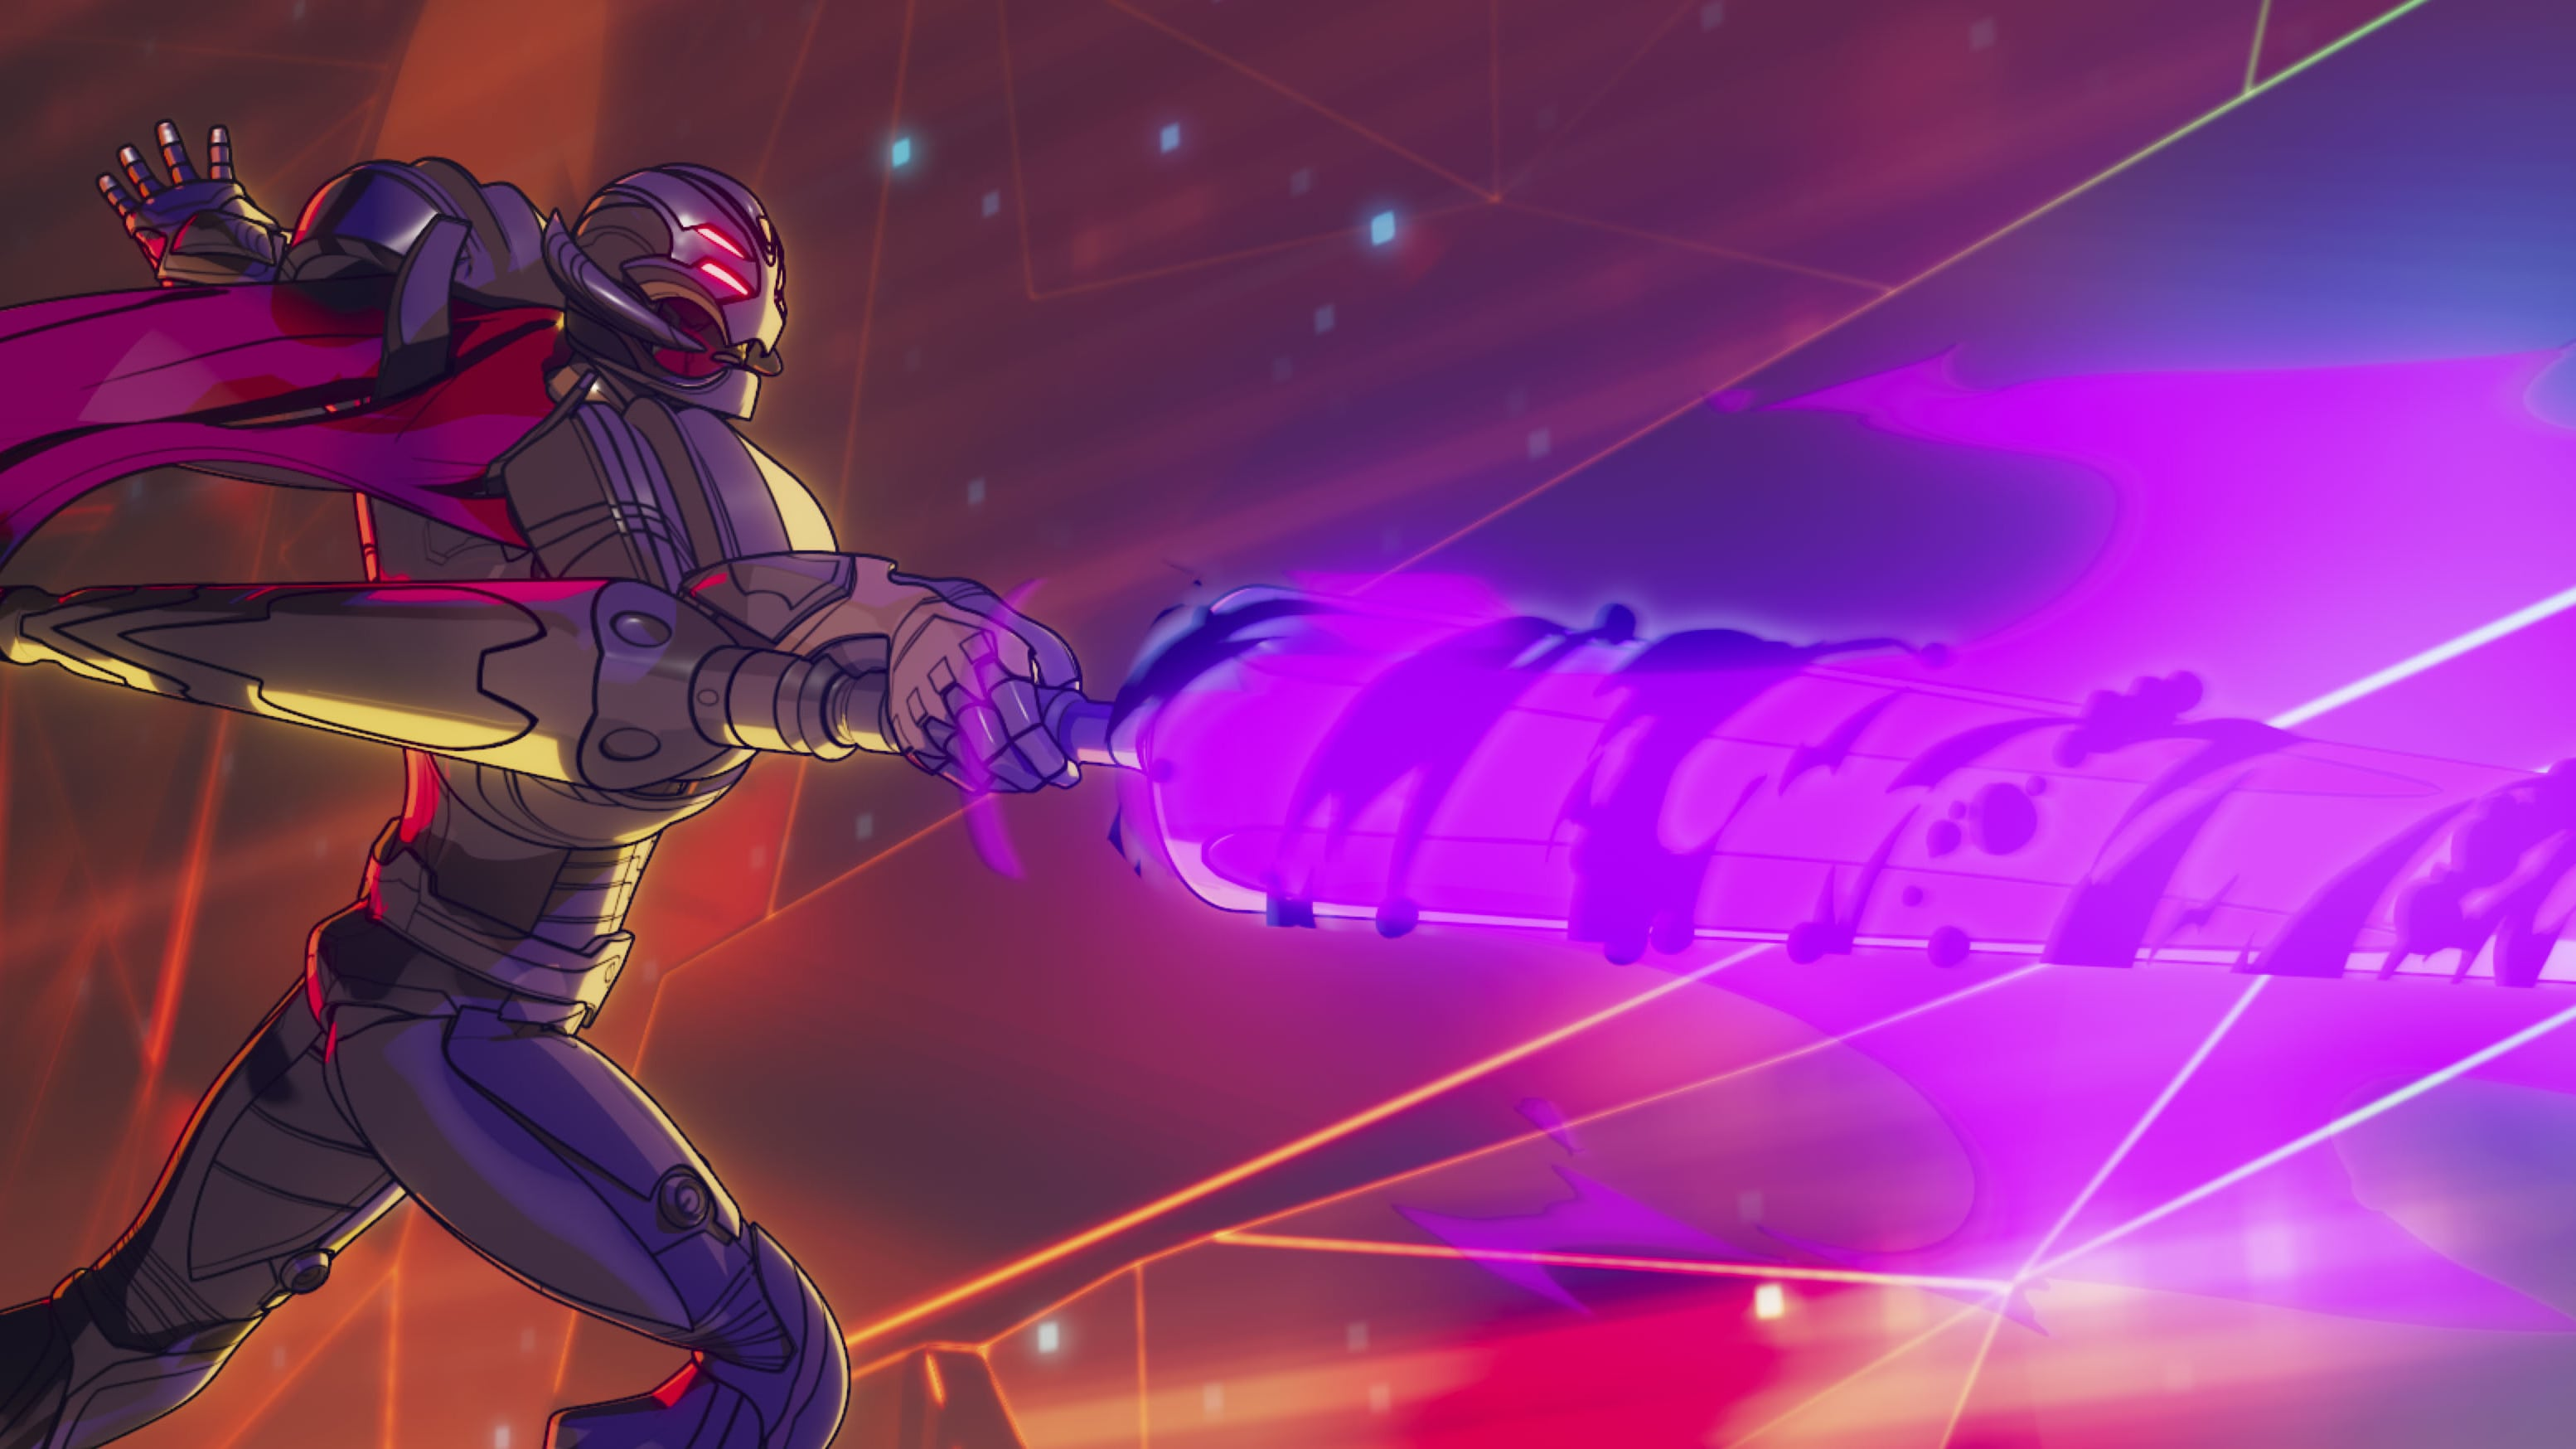 Infinity Ultron in Marvel Studios'  WHAT IF...? exclusively on Disney+. ©Marvel Studios 2021. All Rights Reserved.